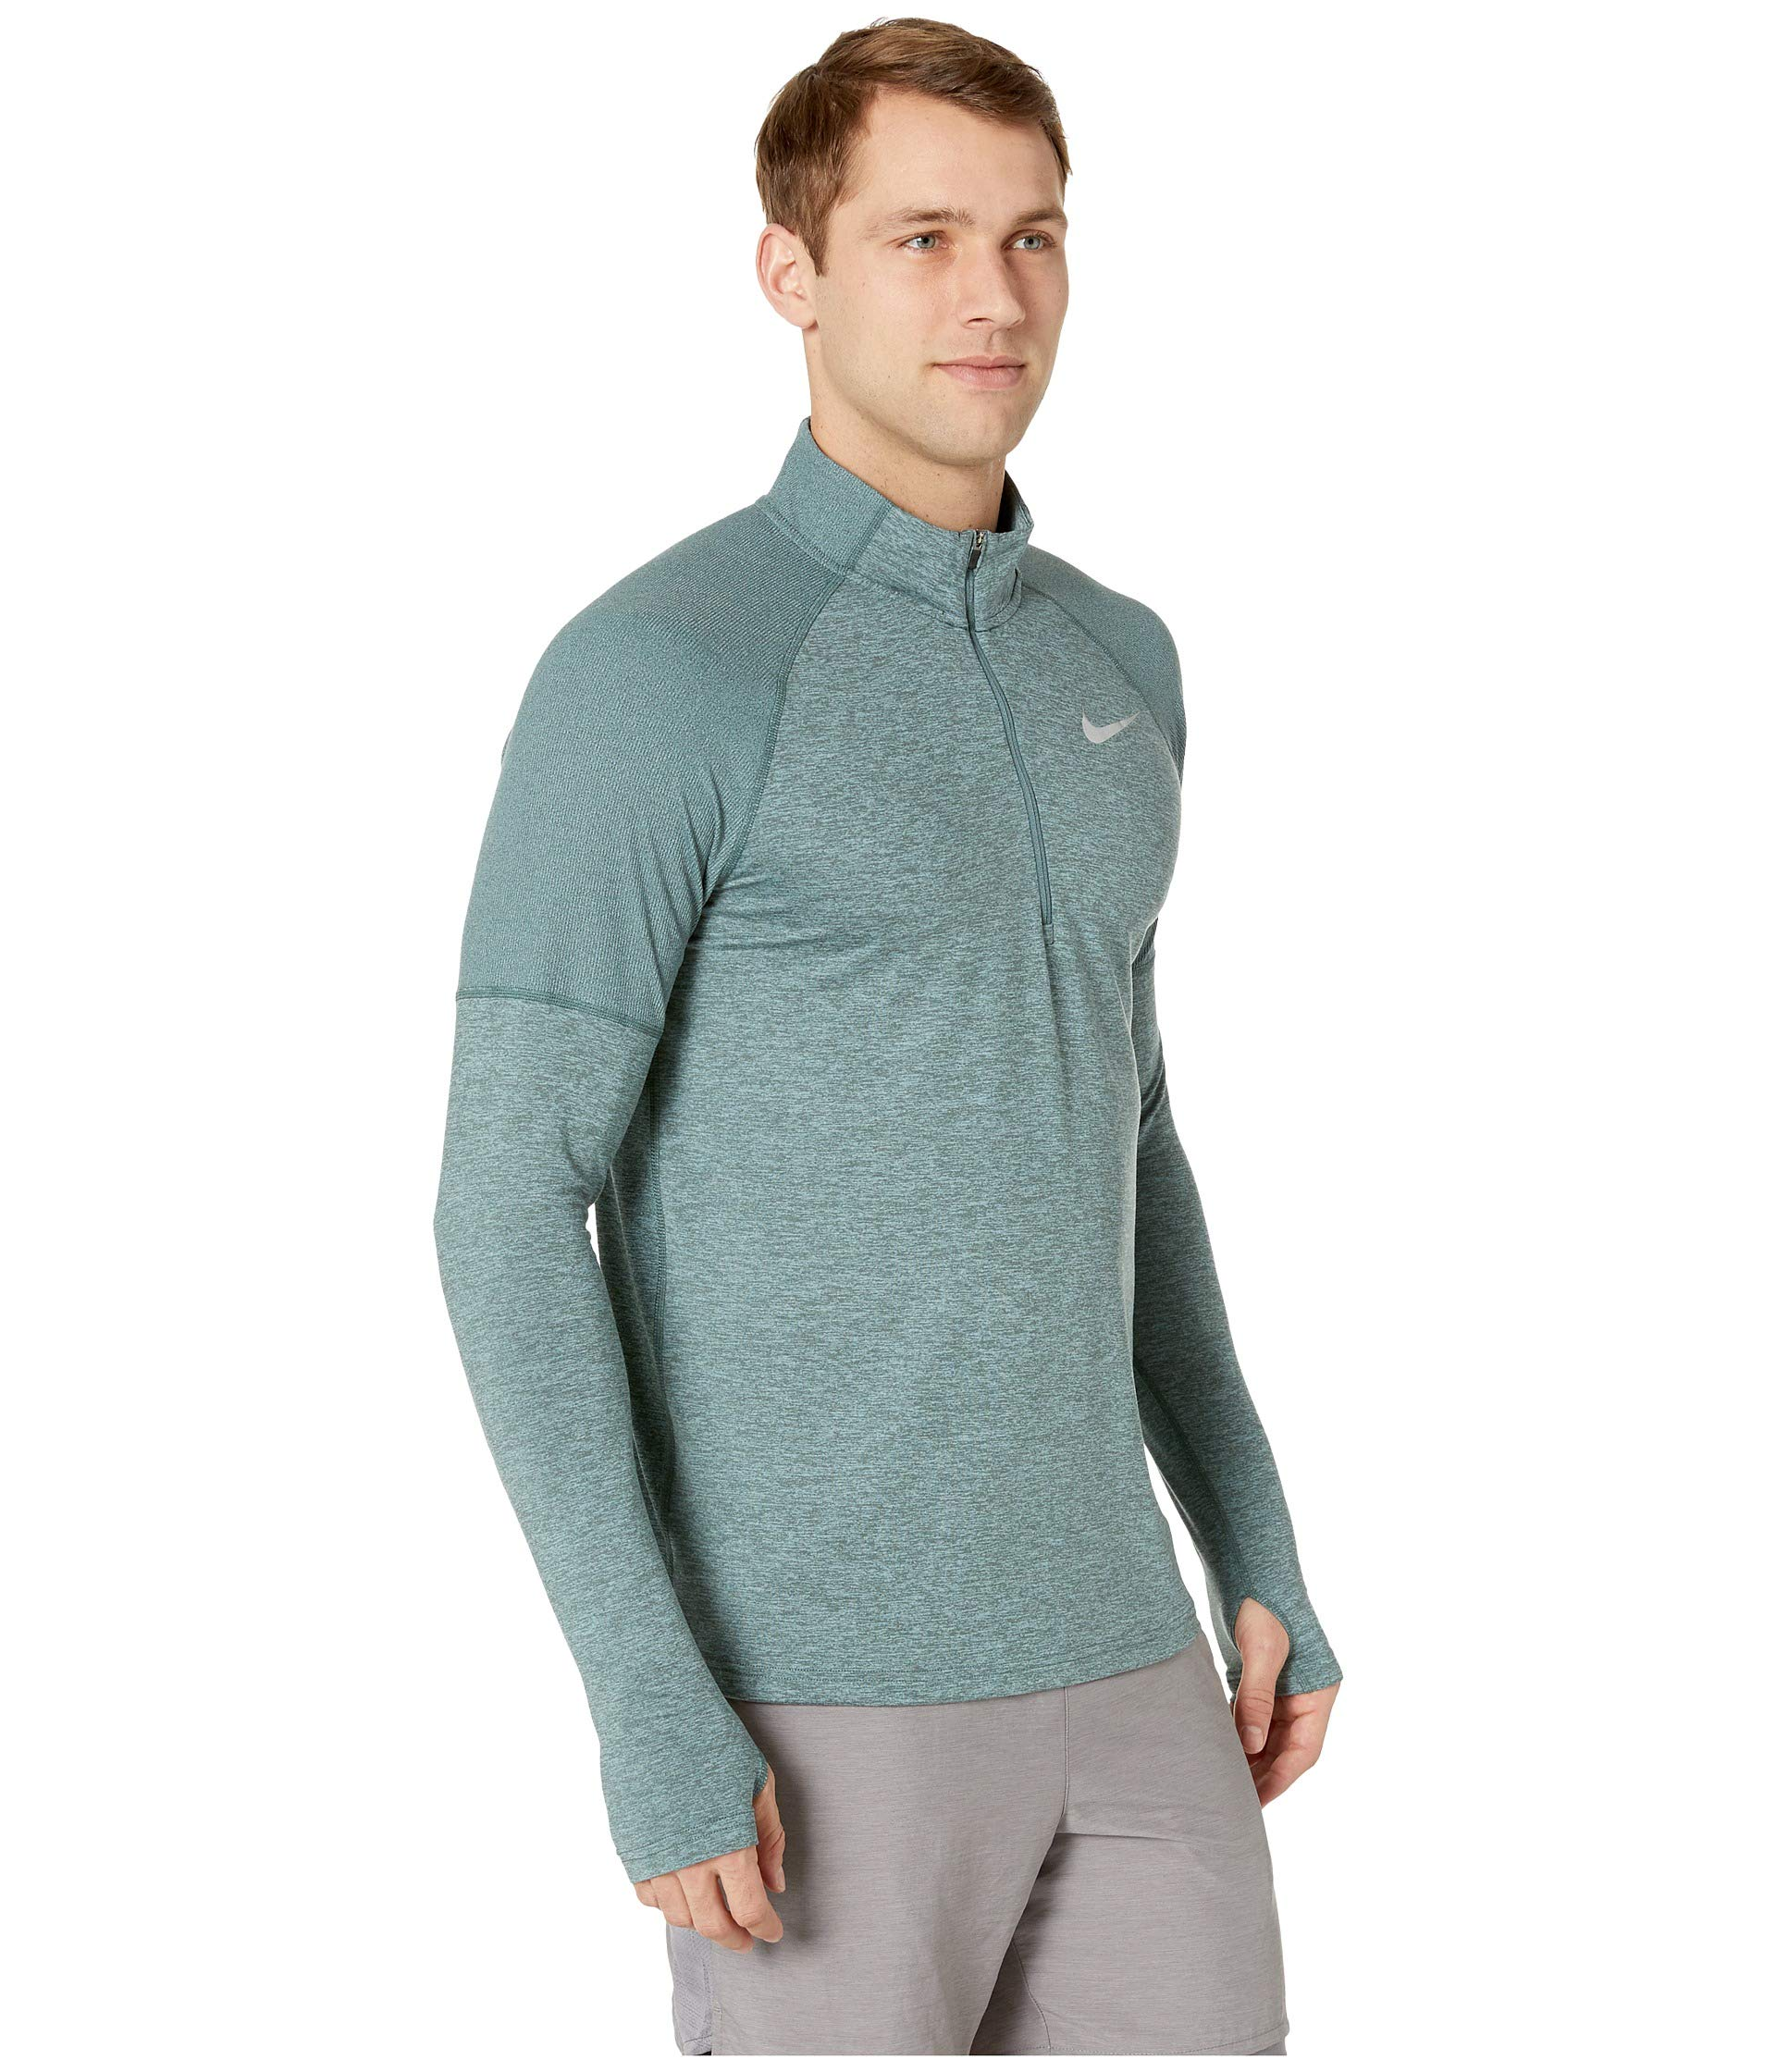 Nike Men's Element 1/2 Zip Running Top Hasta/Aviator Grey/Reflective Silver Size Small by Nike (Image #5)